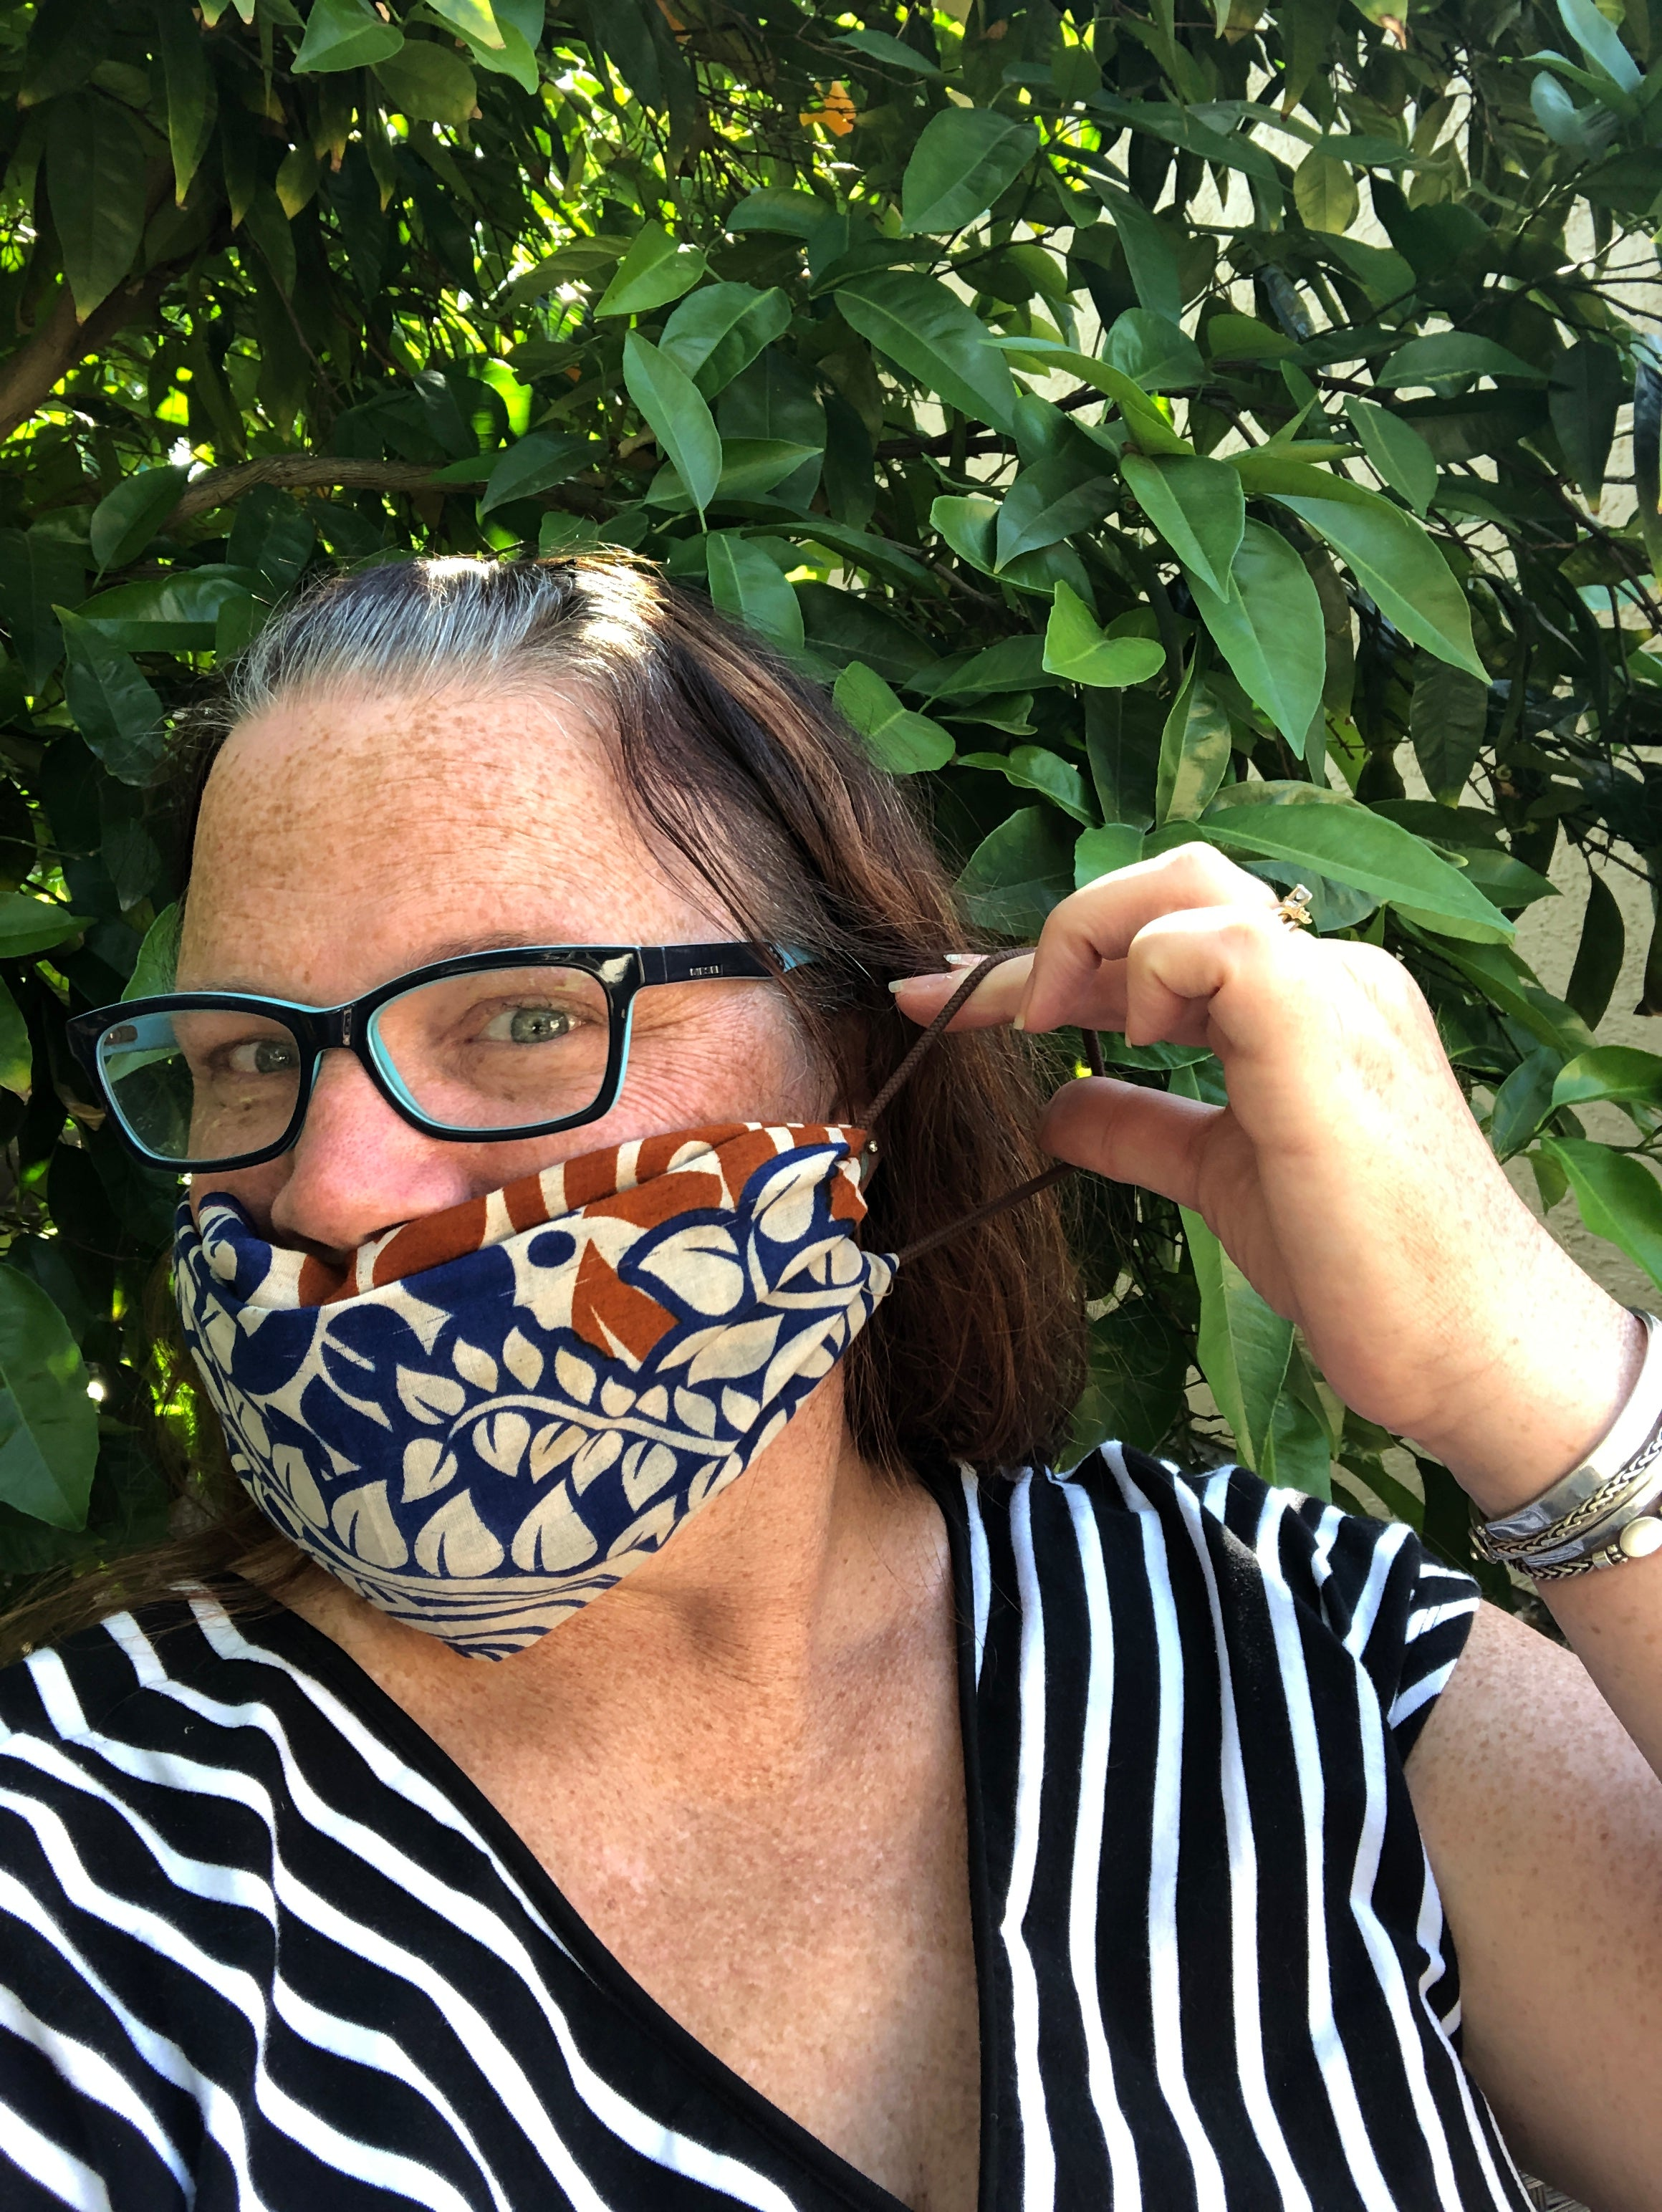 DIY no sew face mask with a bandana fair trade subscription box item from do good shop